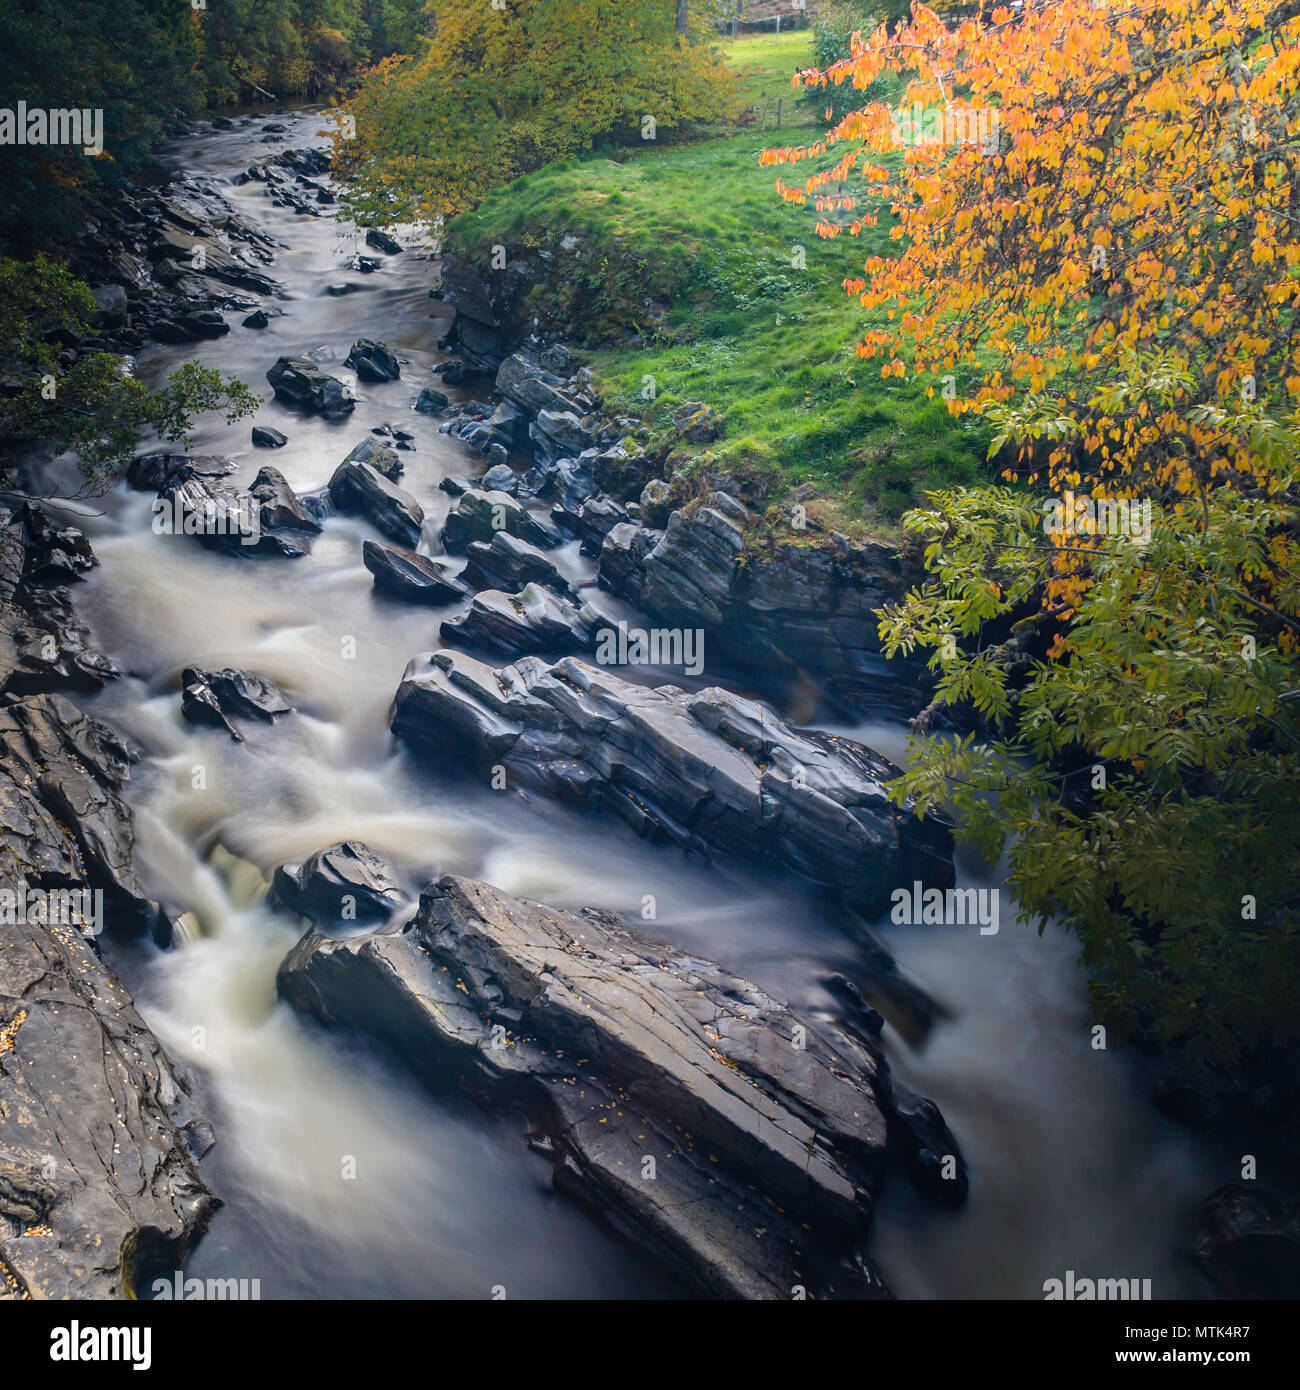 The closer i got the louder the stream was crashing down the rocks on a perfect fall day - Stock Image